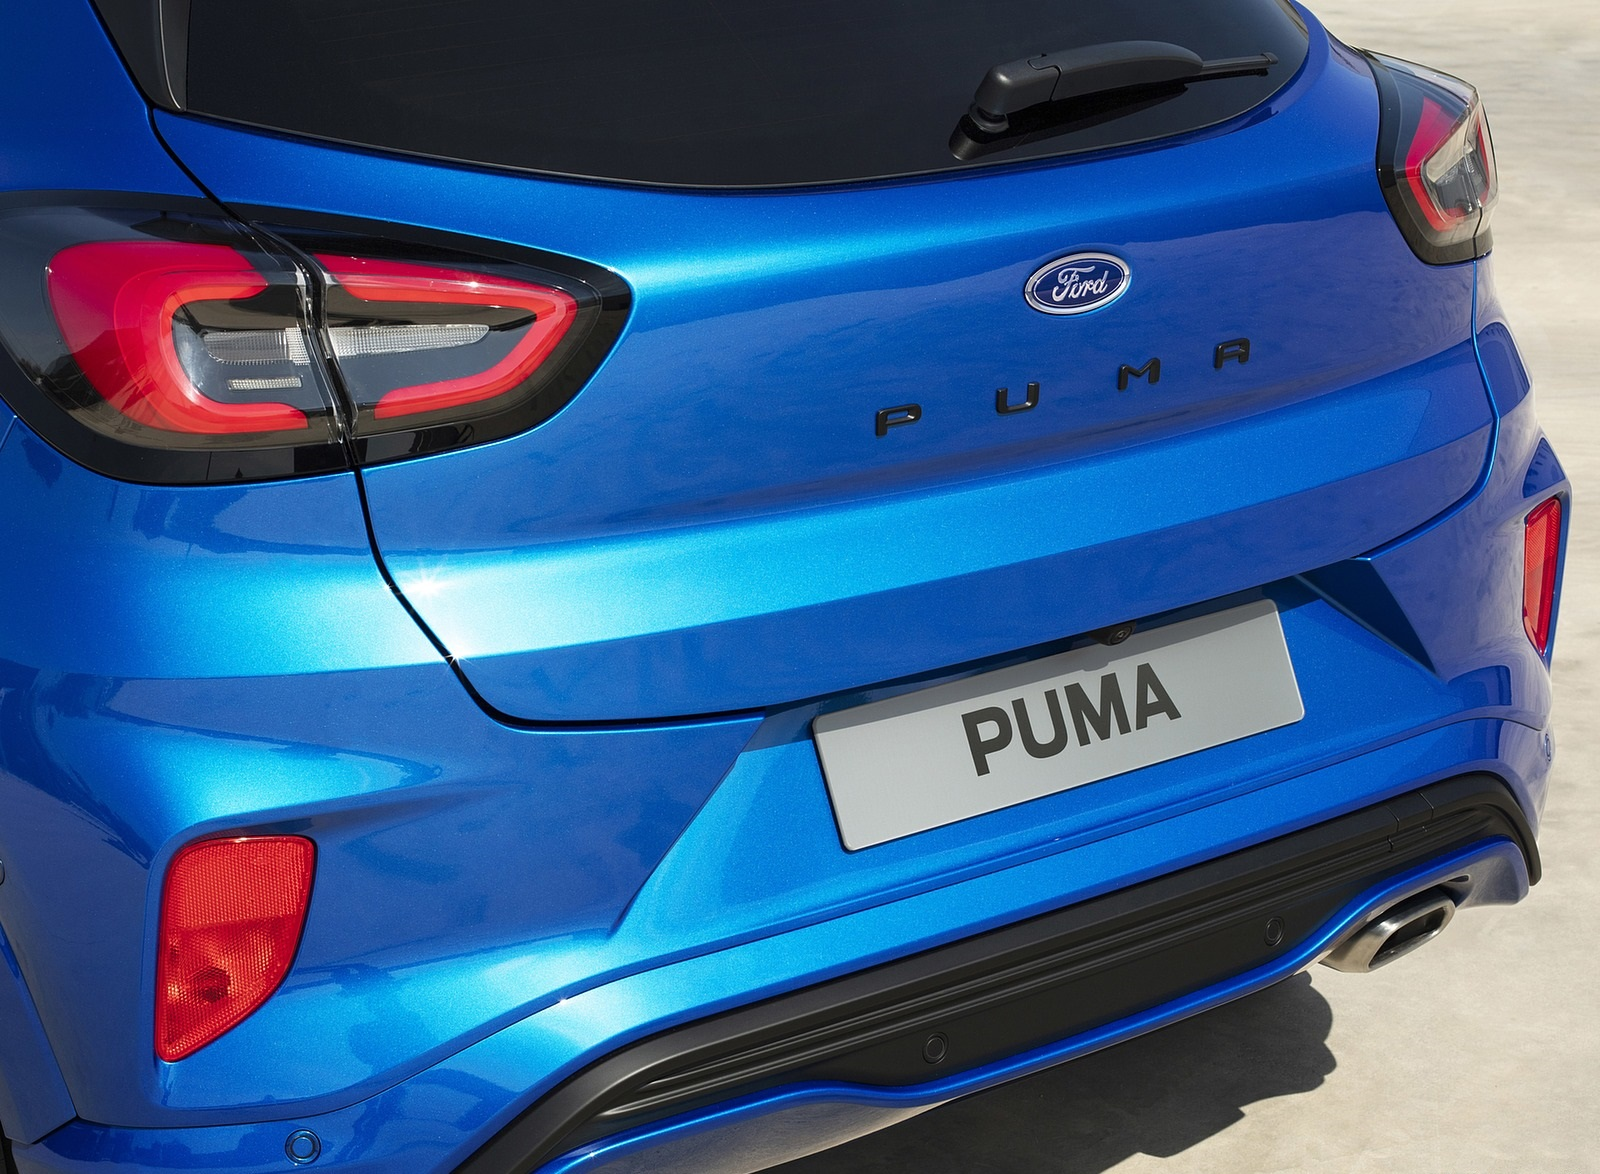 2020 Ford Puma Tail Light Wallpapers (13)